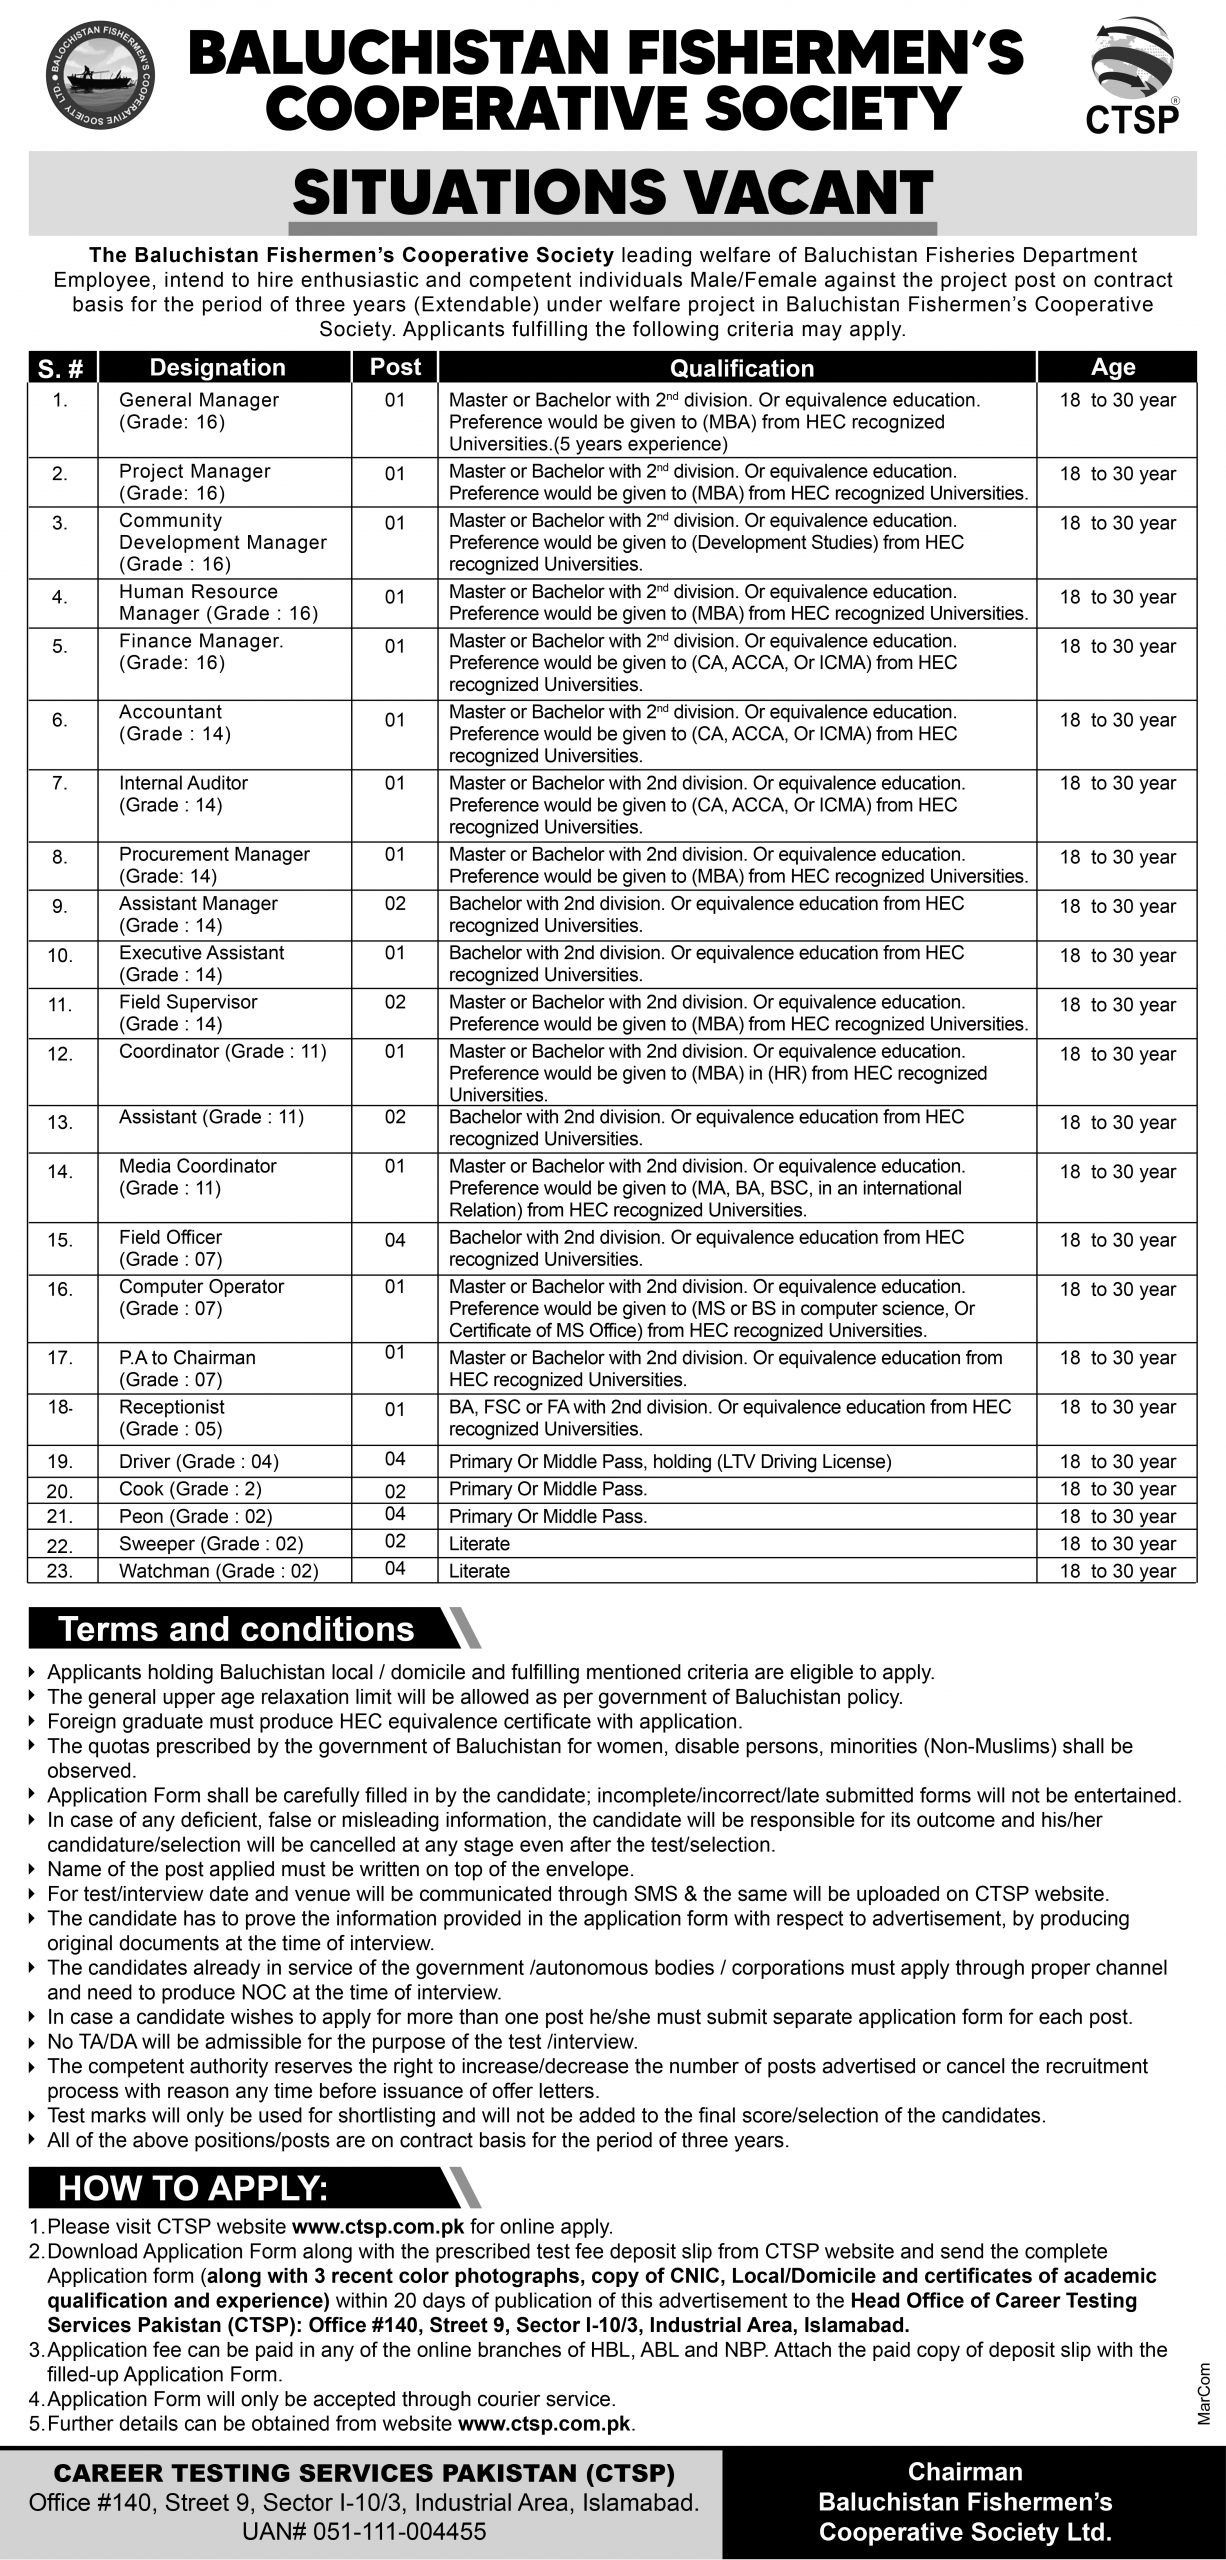 Baluchistan Fishermans Cooperative Society Jobs CTSP Roll No Slip